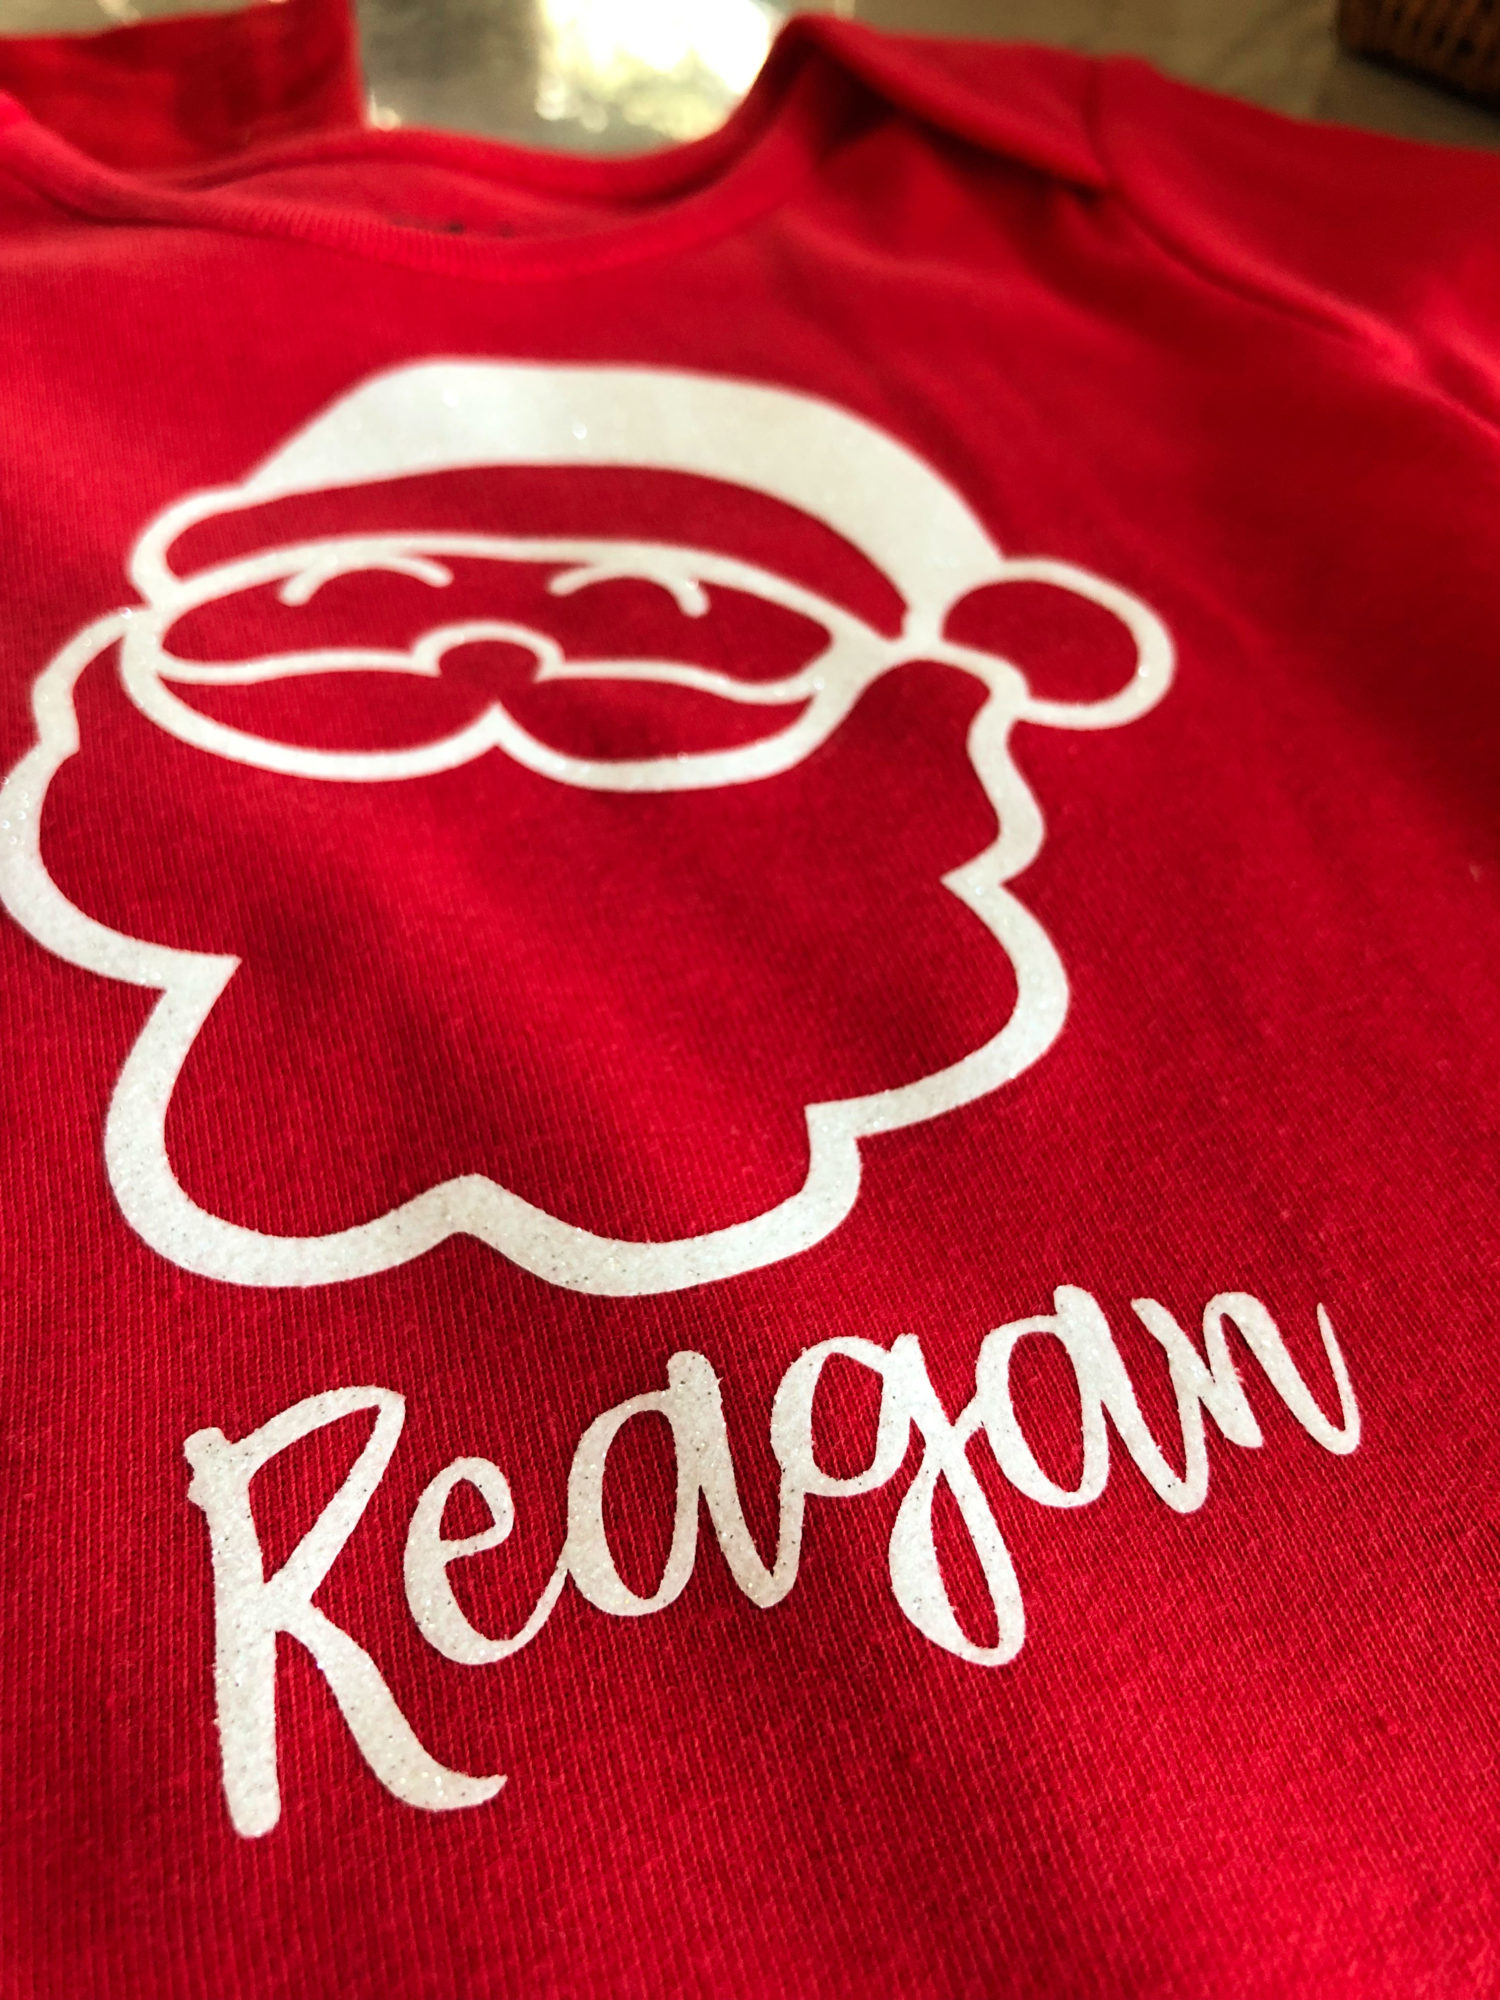 DIY Personalized Santa T-Shirt